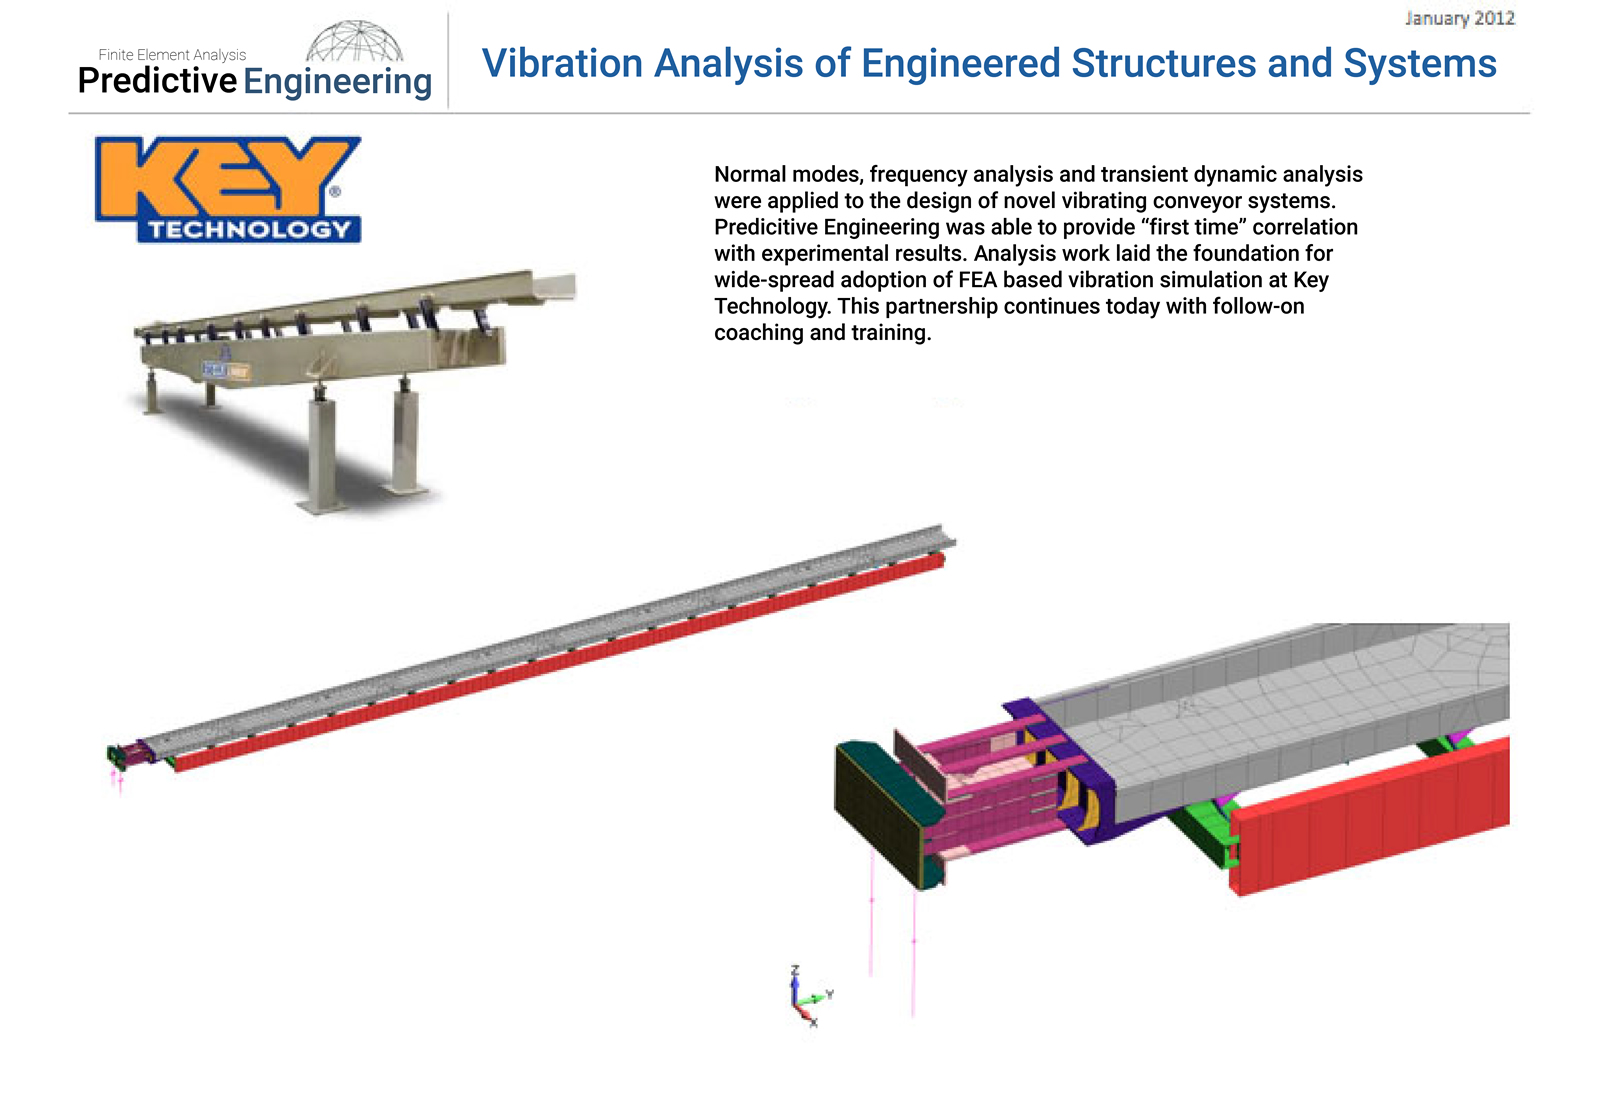 Normal modes, frequency analysis and transient dynamic analysis were applied to the design of novel vibrating conveyor systems.